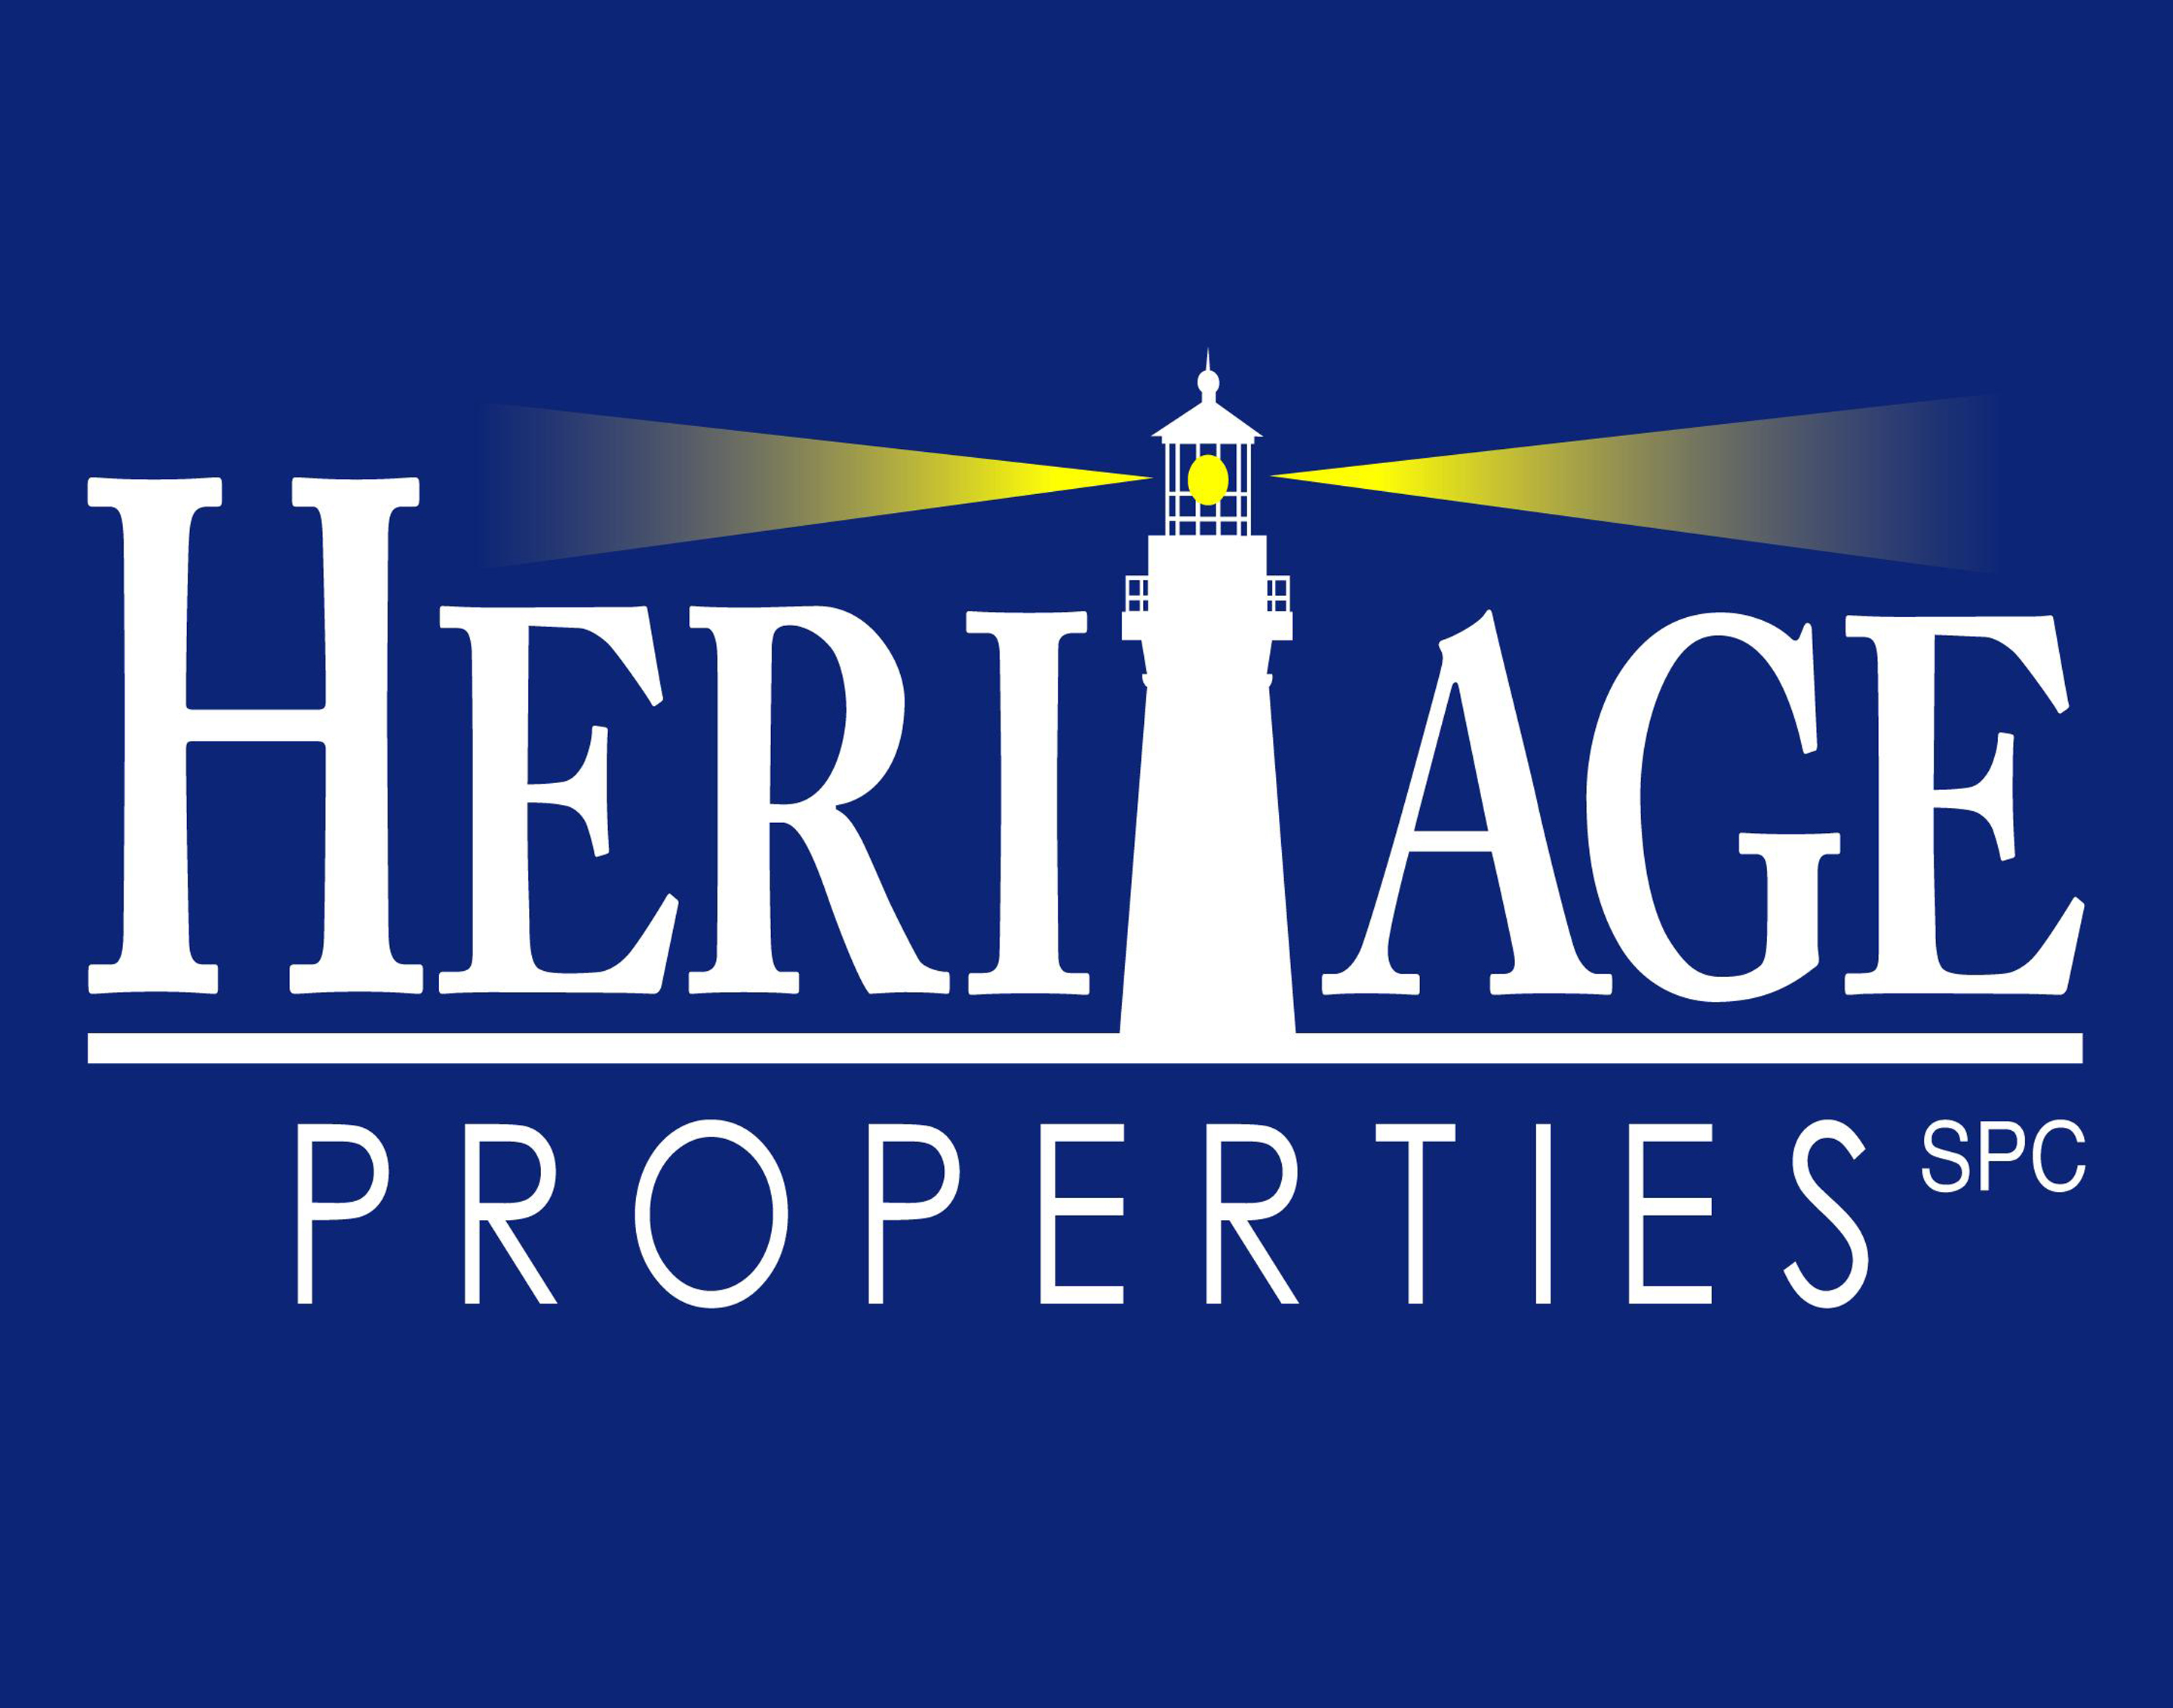 Heritage Properties gets new Website Background Video